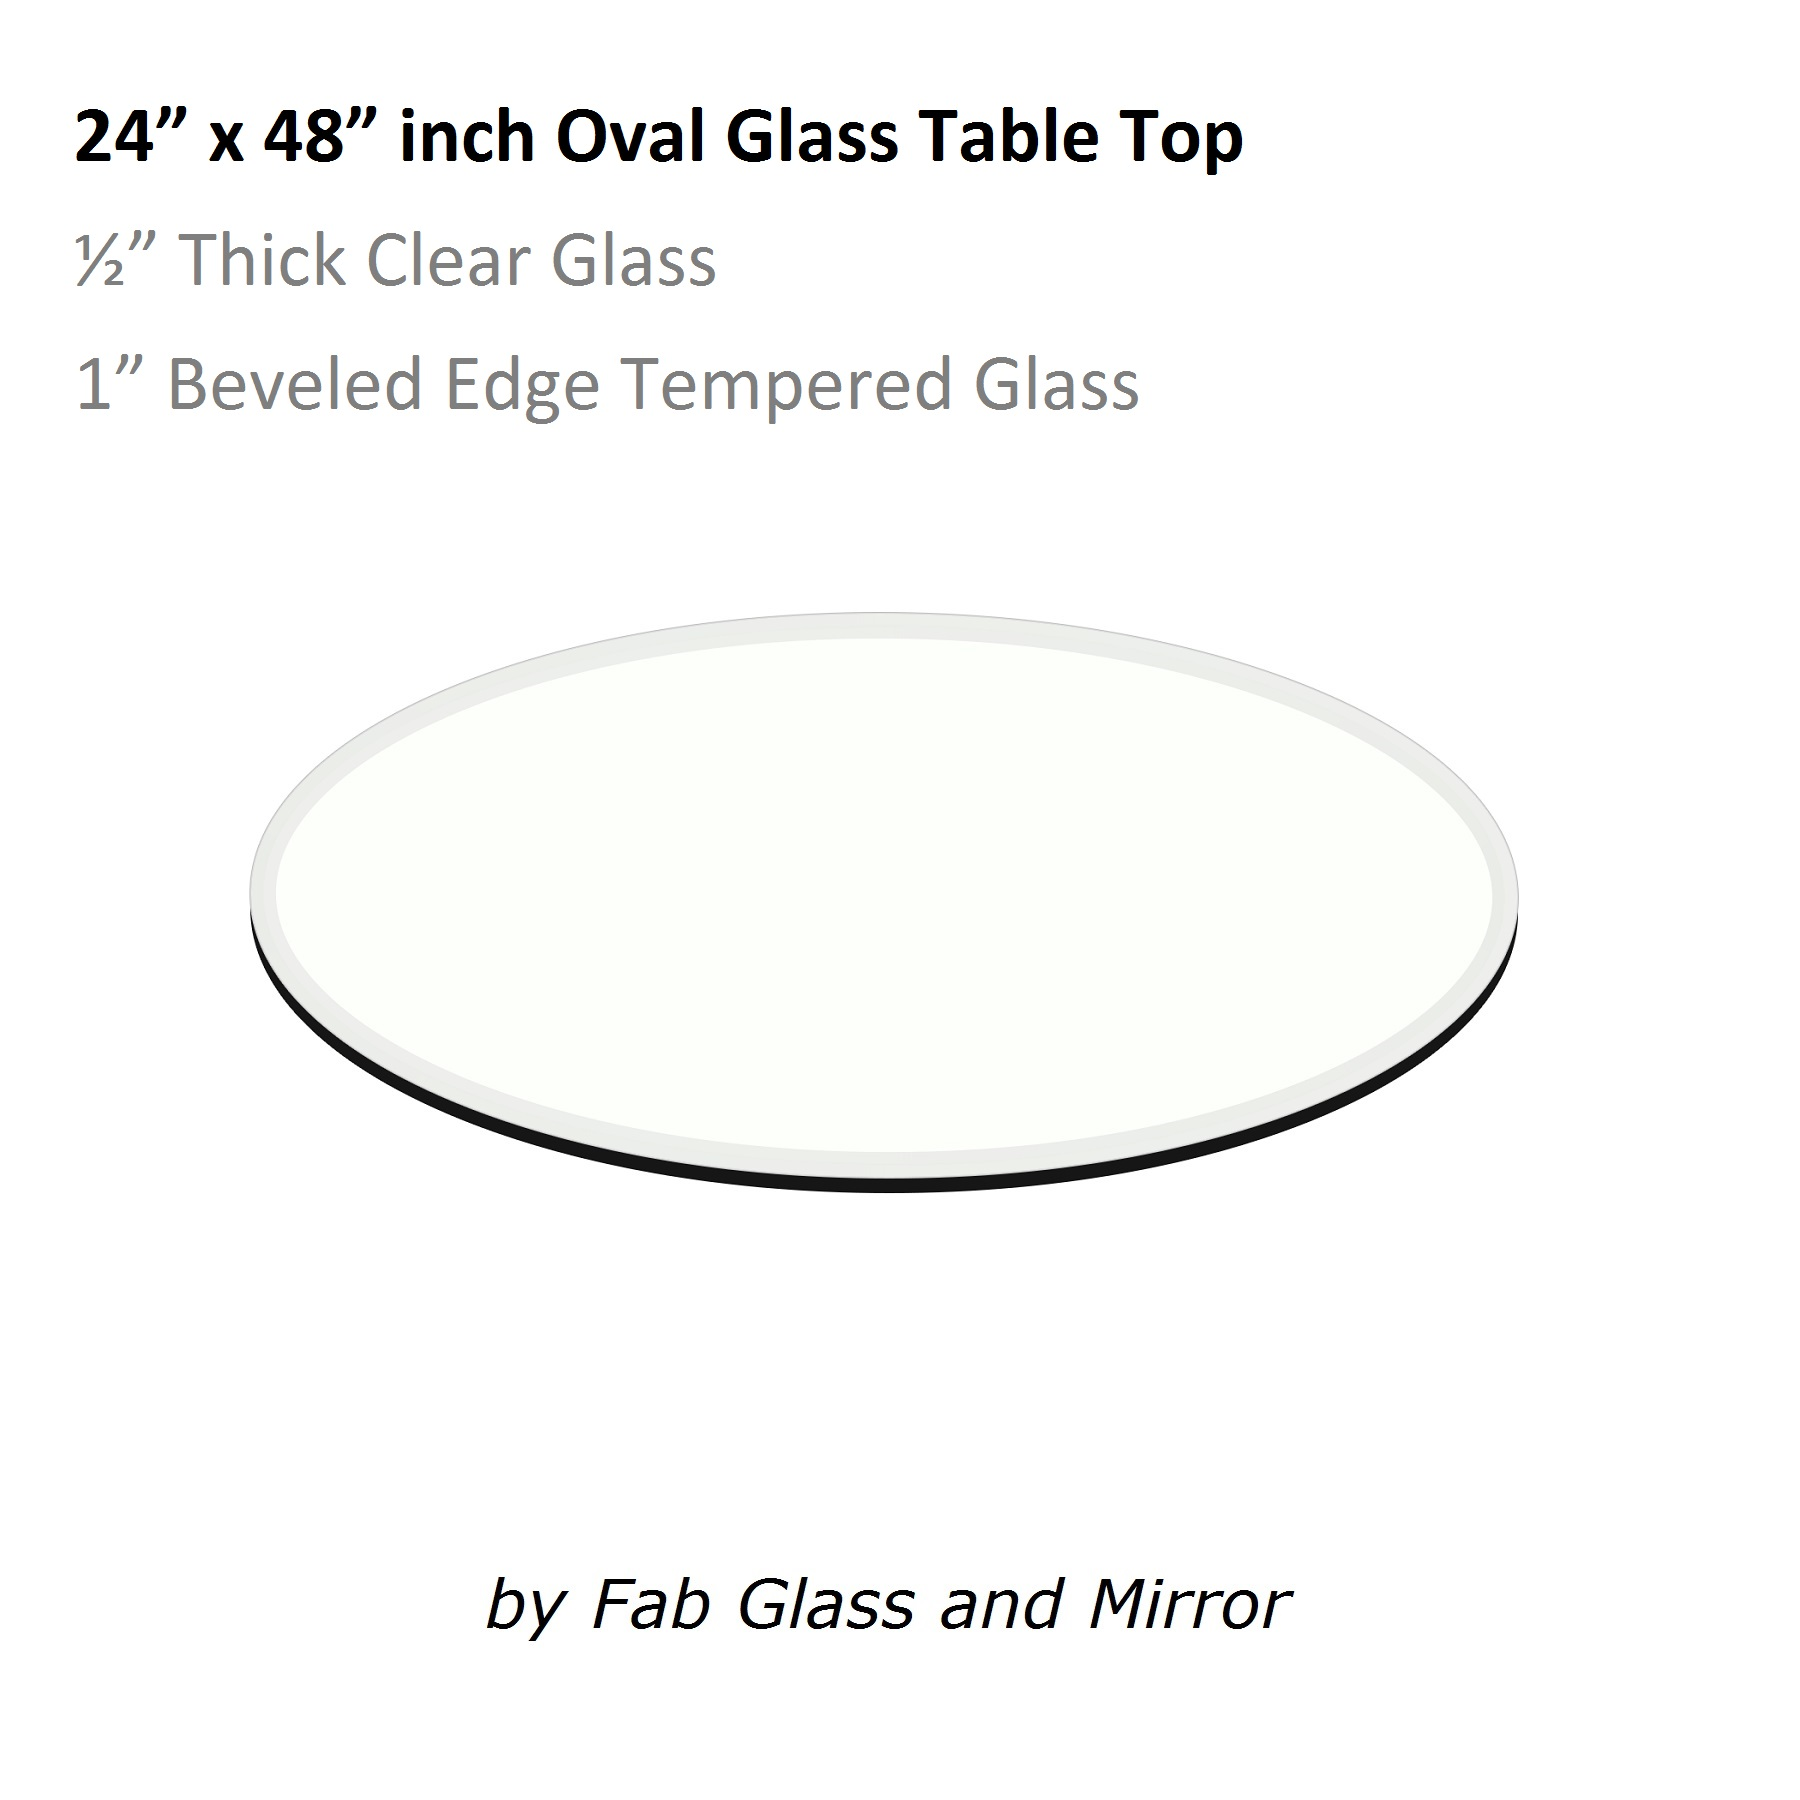 Oval Glass Table Top Buy Tempered eOval Glass Table Tops